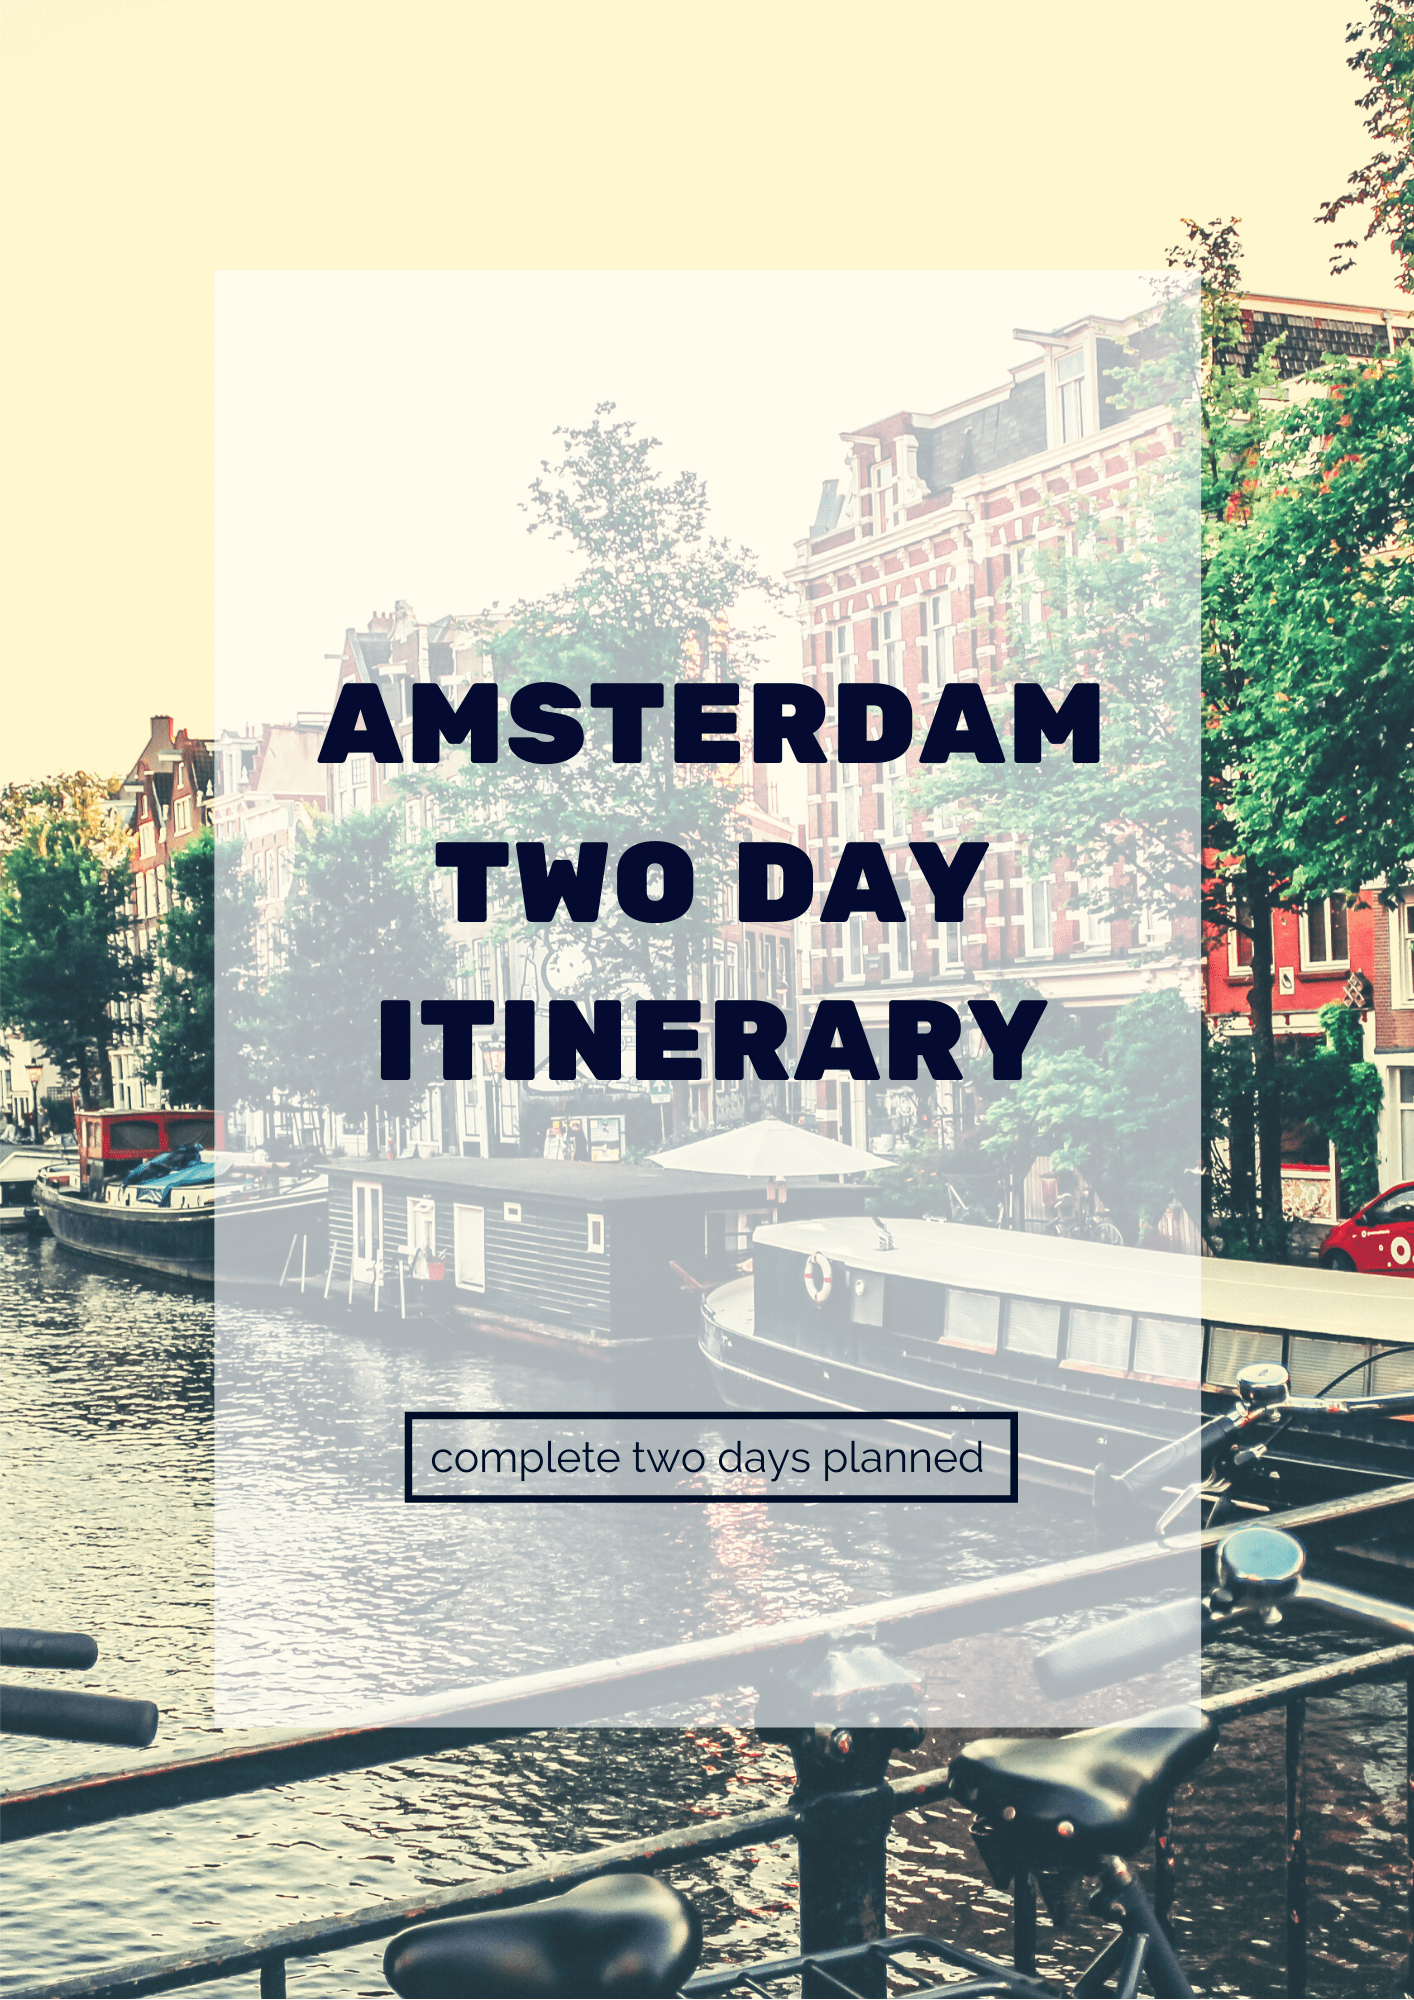 Amsterdam Two Day Itinerary 2019